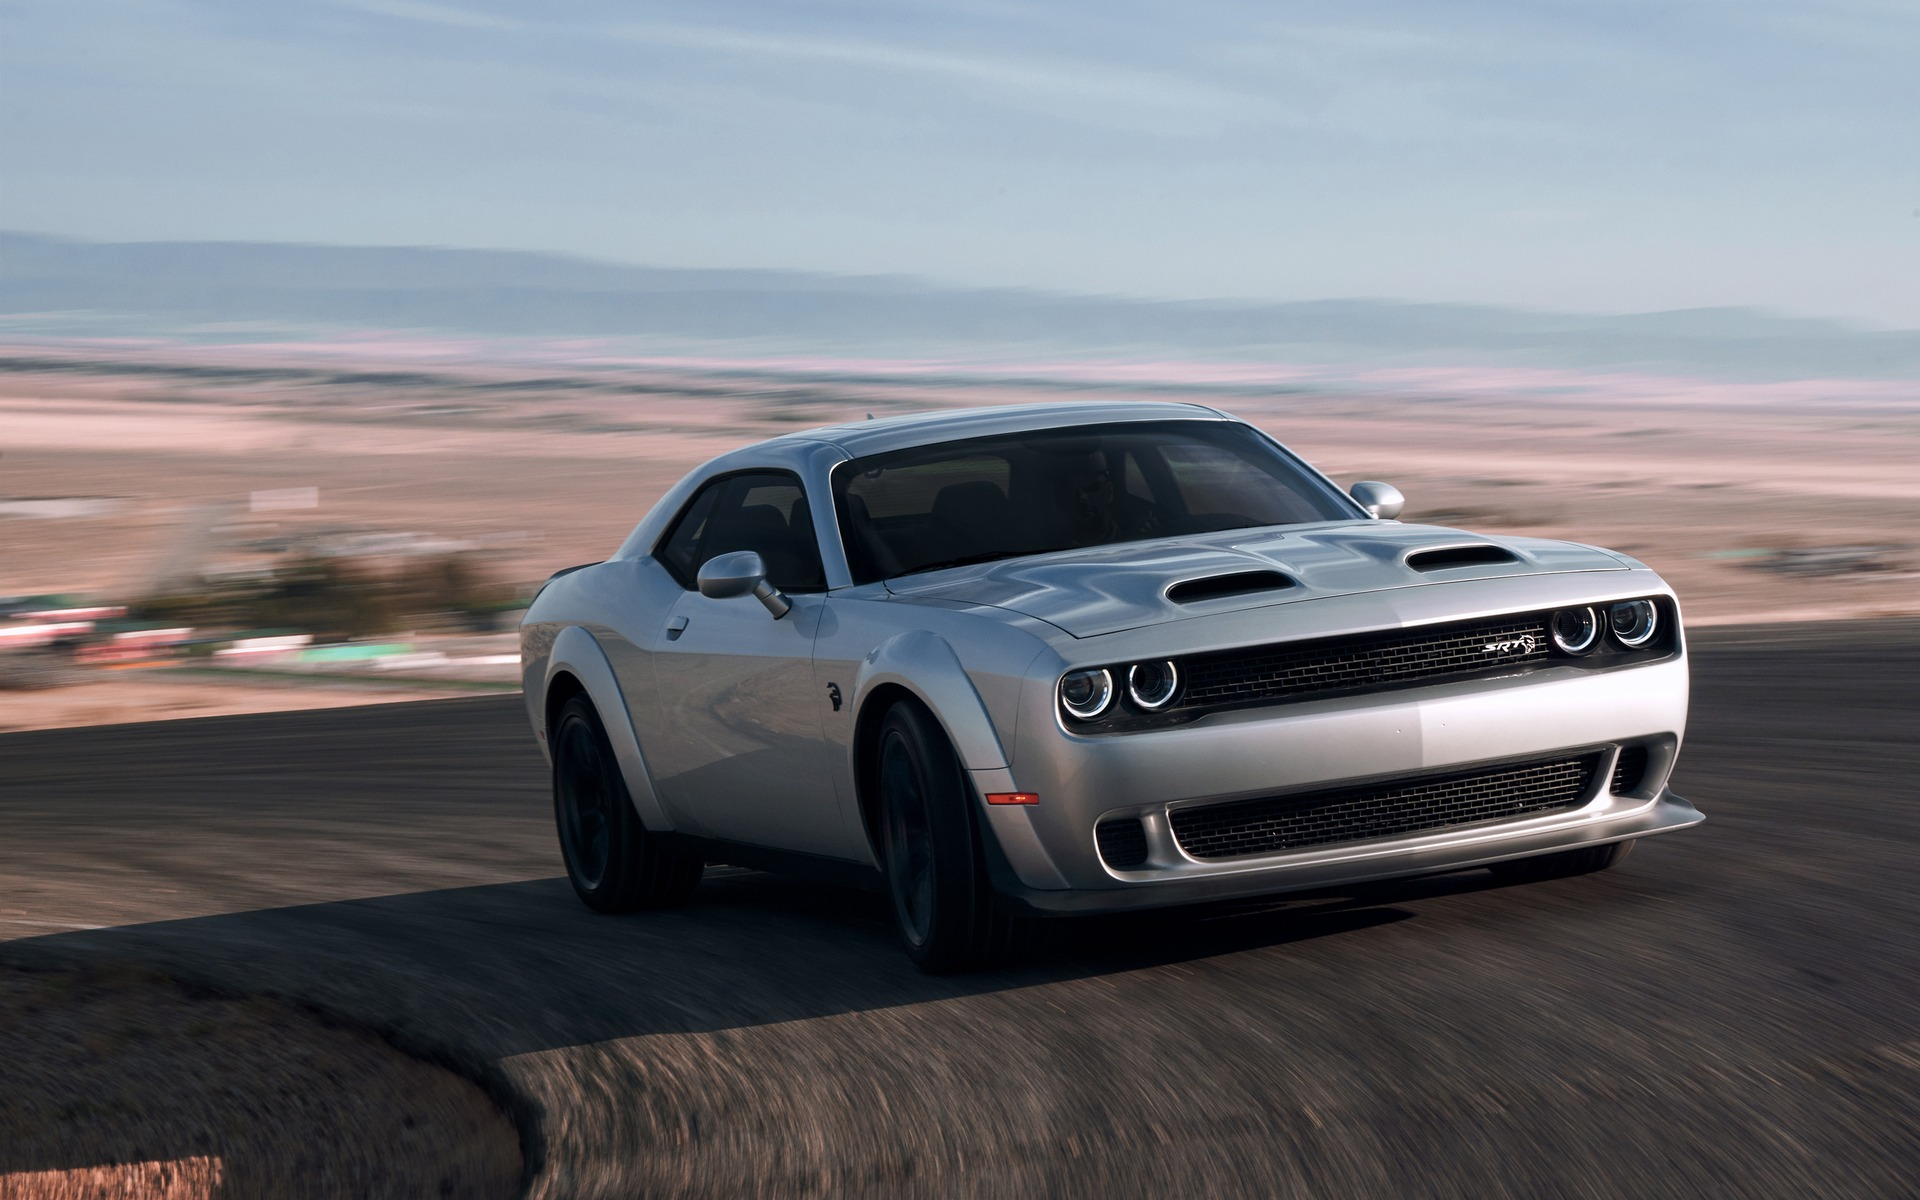 2019 Dodge Challenger Srt Hellcat Redeye We Re Driving It On A Racetrack This Week The Car Guide